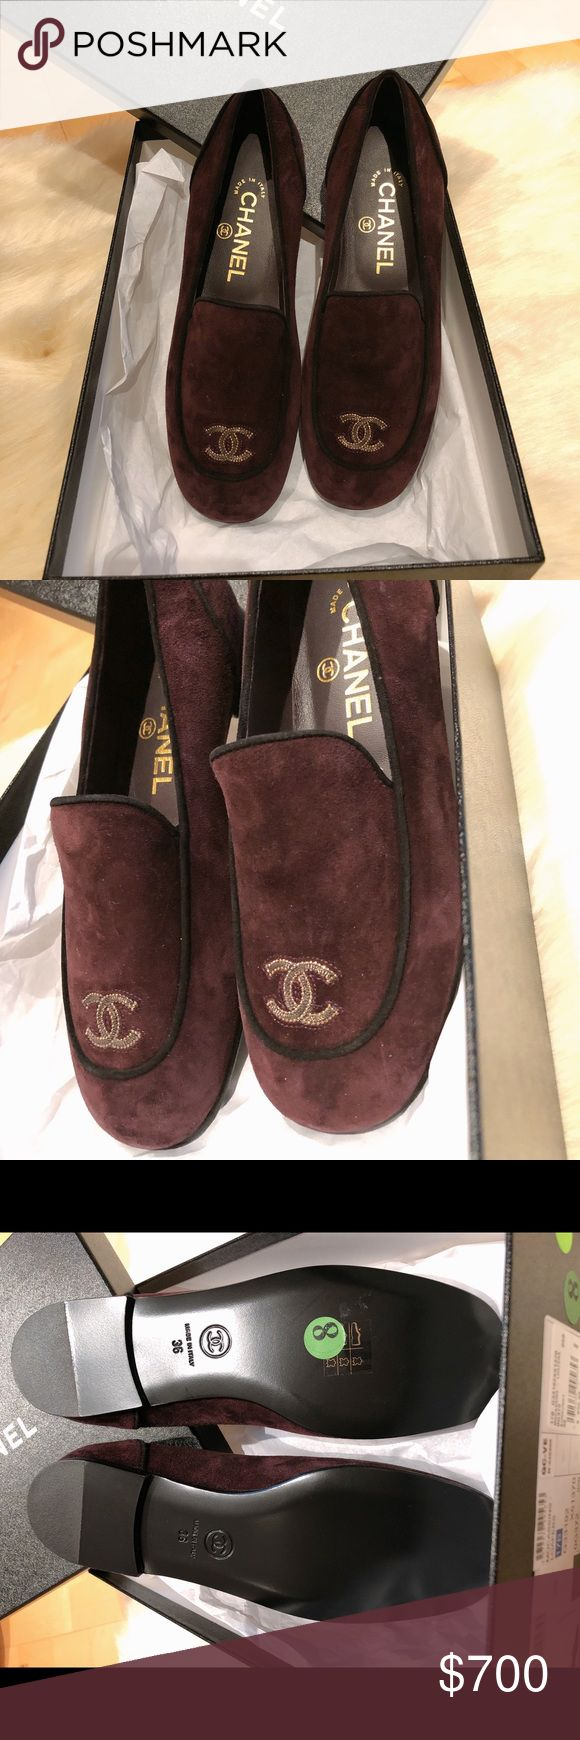 💯 AUTHENTIC CHANEL LOAFERS $500 thru PP | Chase | BOA | Facebook 100% Authentic  Purchased from Saks Fifth Avenue  Comes with Box and Dustbag Size 36 All shoes in the last picture are for sale as well. Please feel free to check out my other listings.  All sales are final. No return or exchange.  Once offer is accepted the item is YOURS! Thank you Happy Shopping! CHANEL Shoes Flats & Loafers